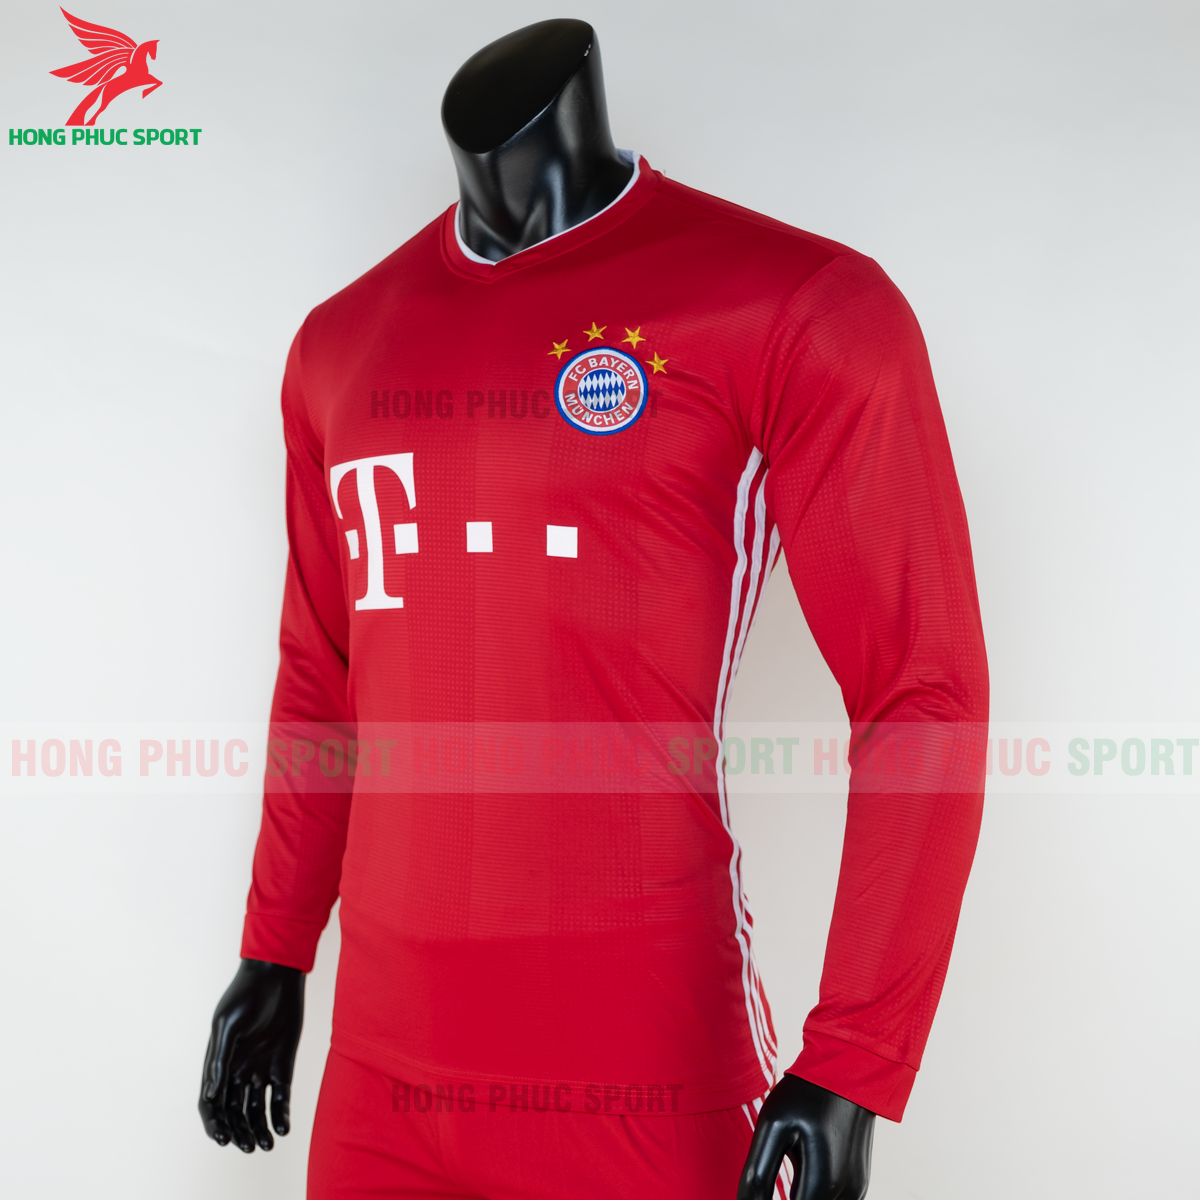 https://cdn.hongphucsport.com/unsafe/s4.shopbay.vn/files/285/ao-dai-tay-bayern-munich-2020-san-nha-3-5f8fb9fdbbc54.png